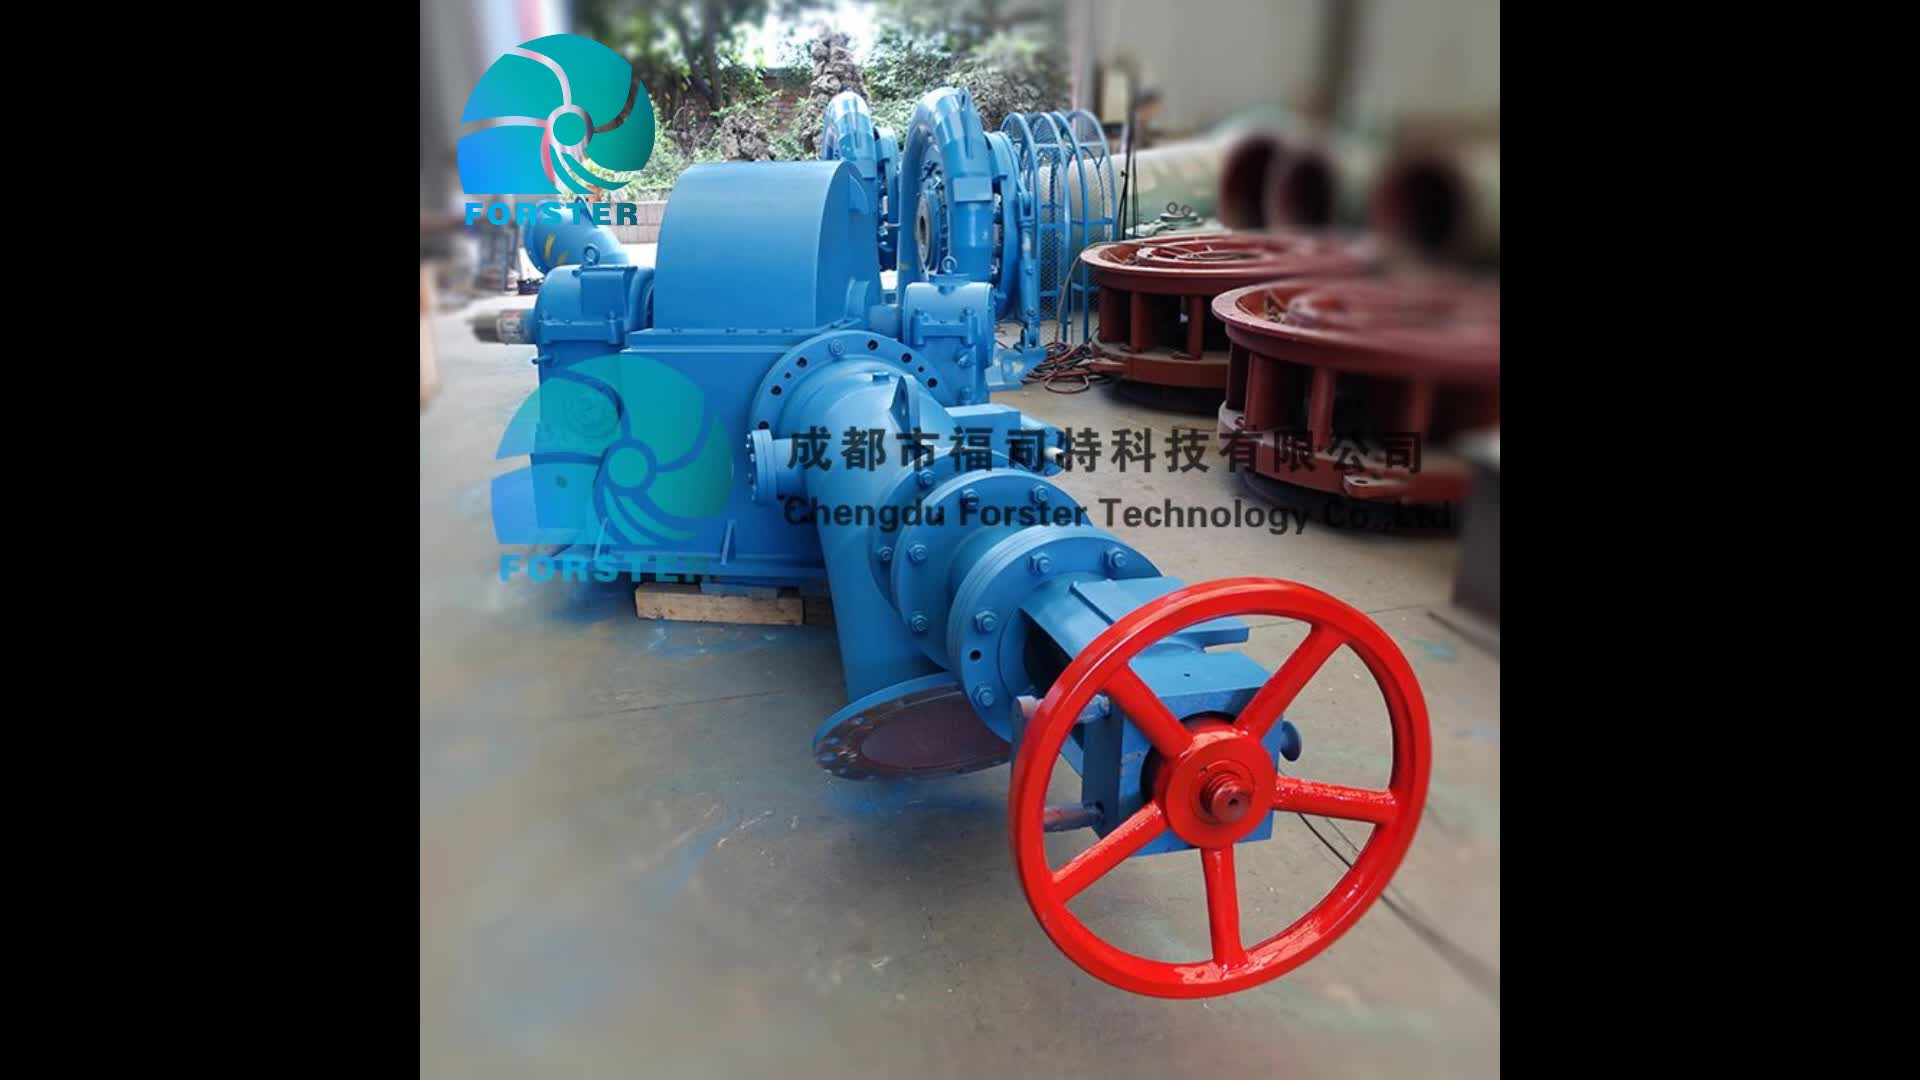 Hot sale high efficiency low price entire control system mini hydro power plant for equipment supply